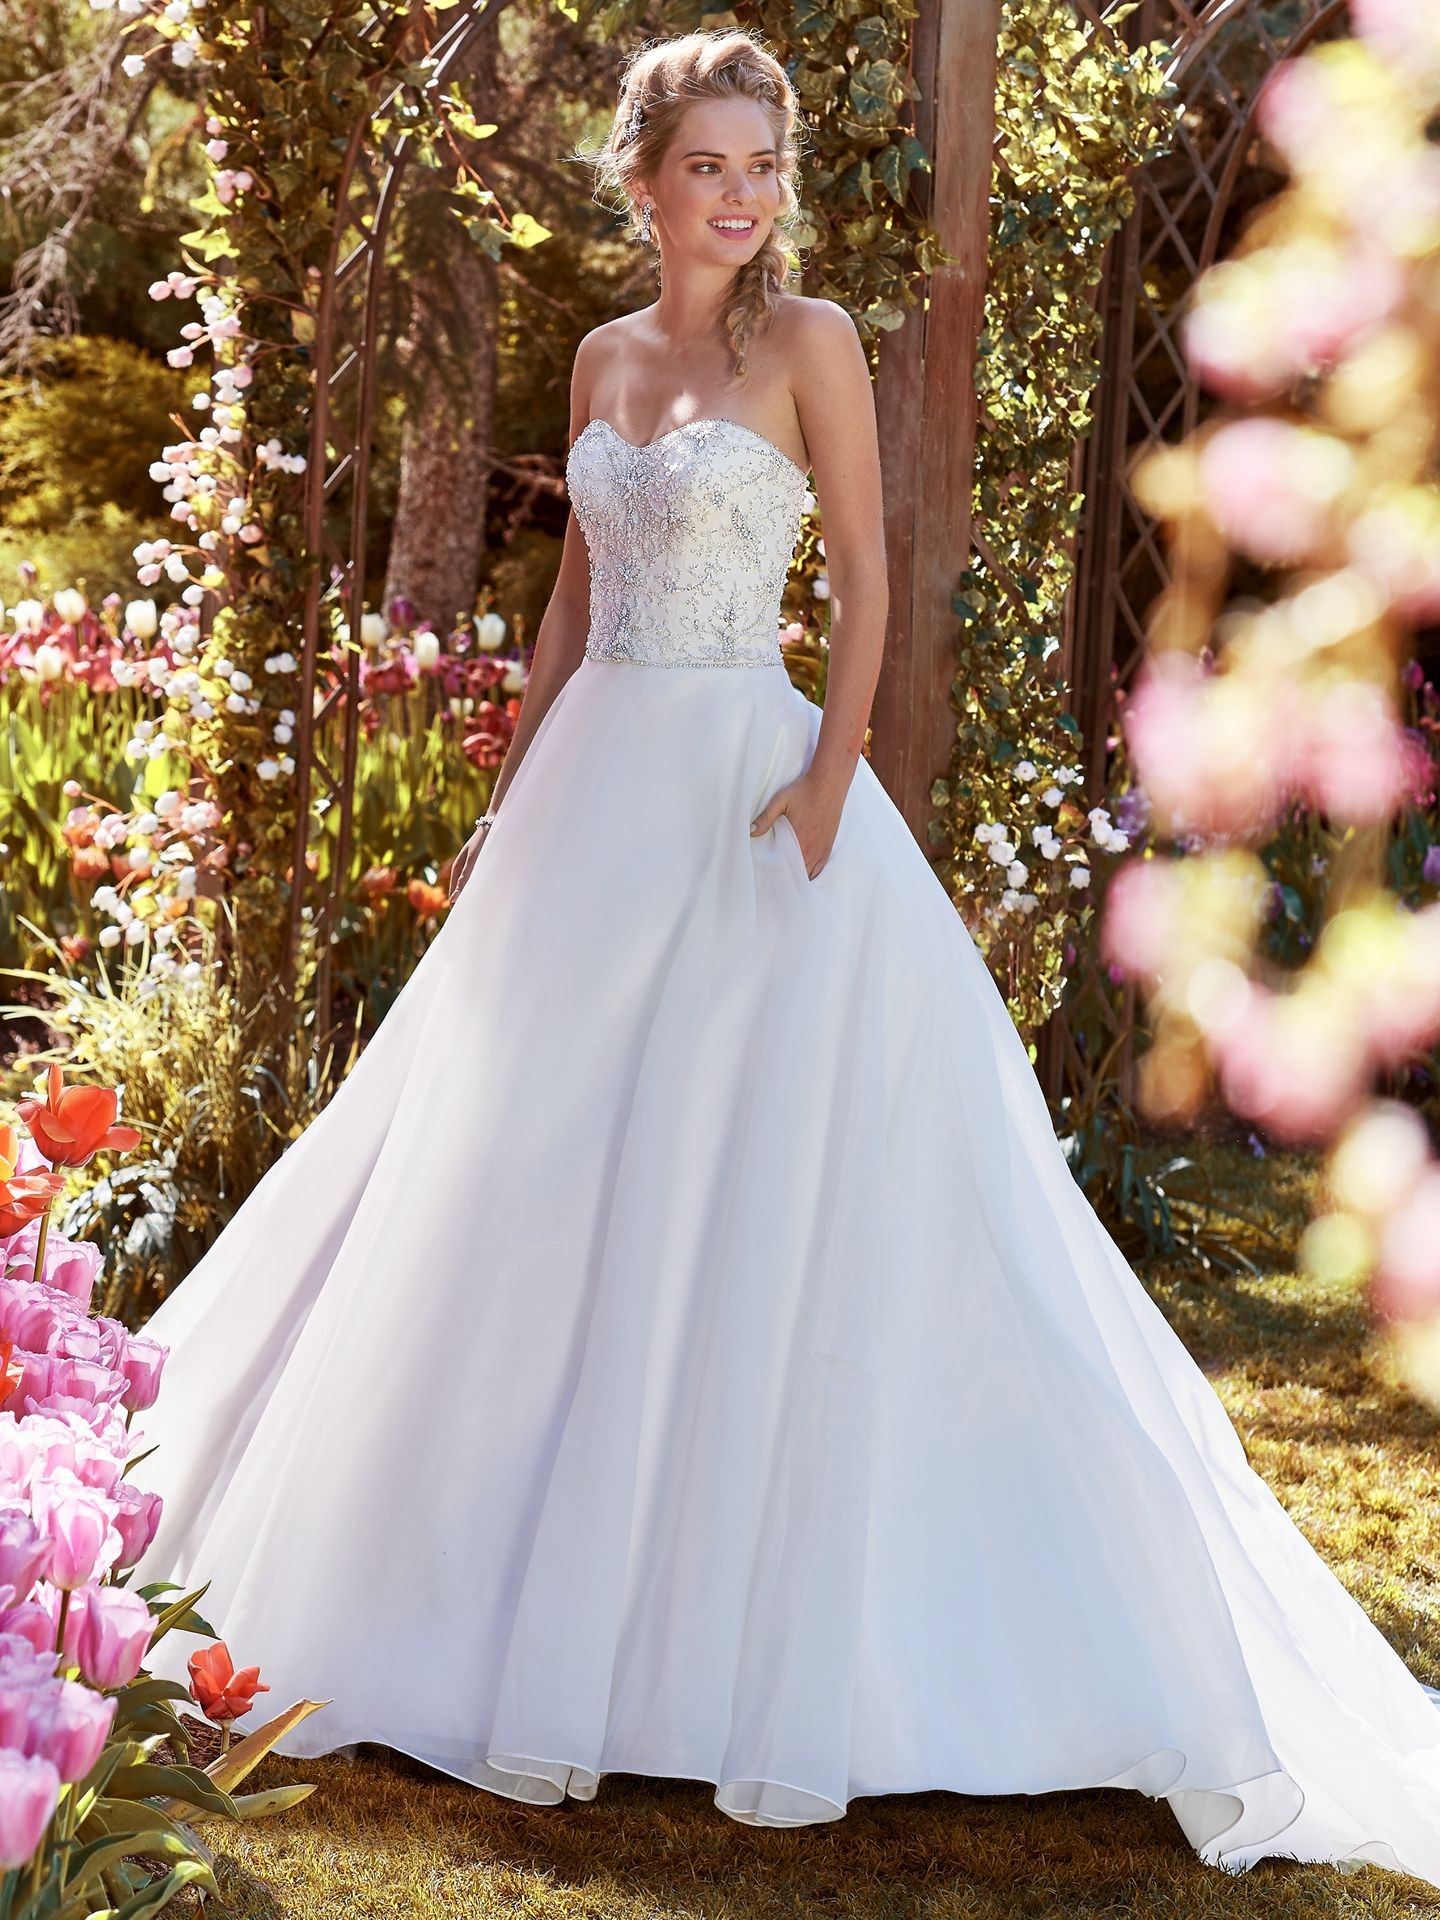 Wedding Dress Color Guide: Shades of White for Every Bride : Love Maggie